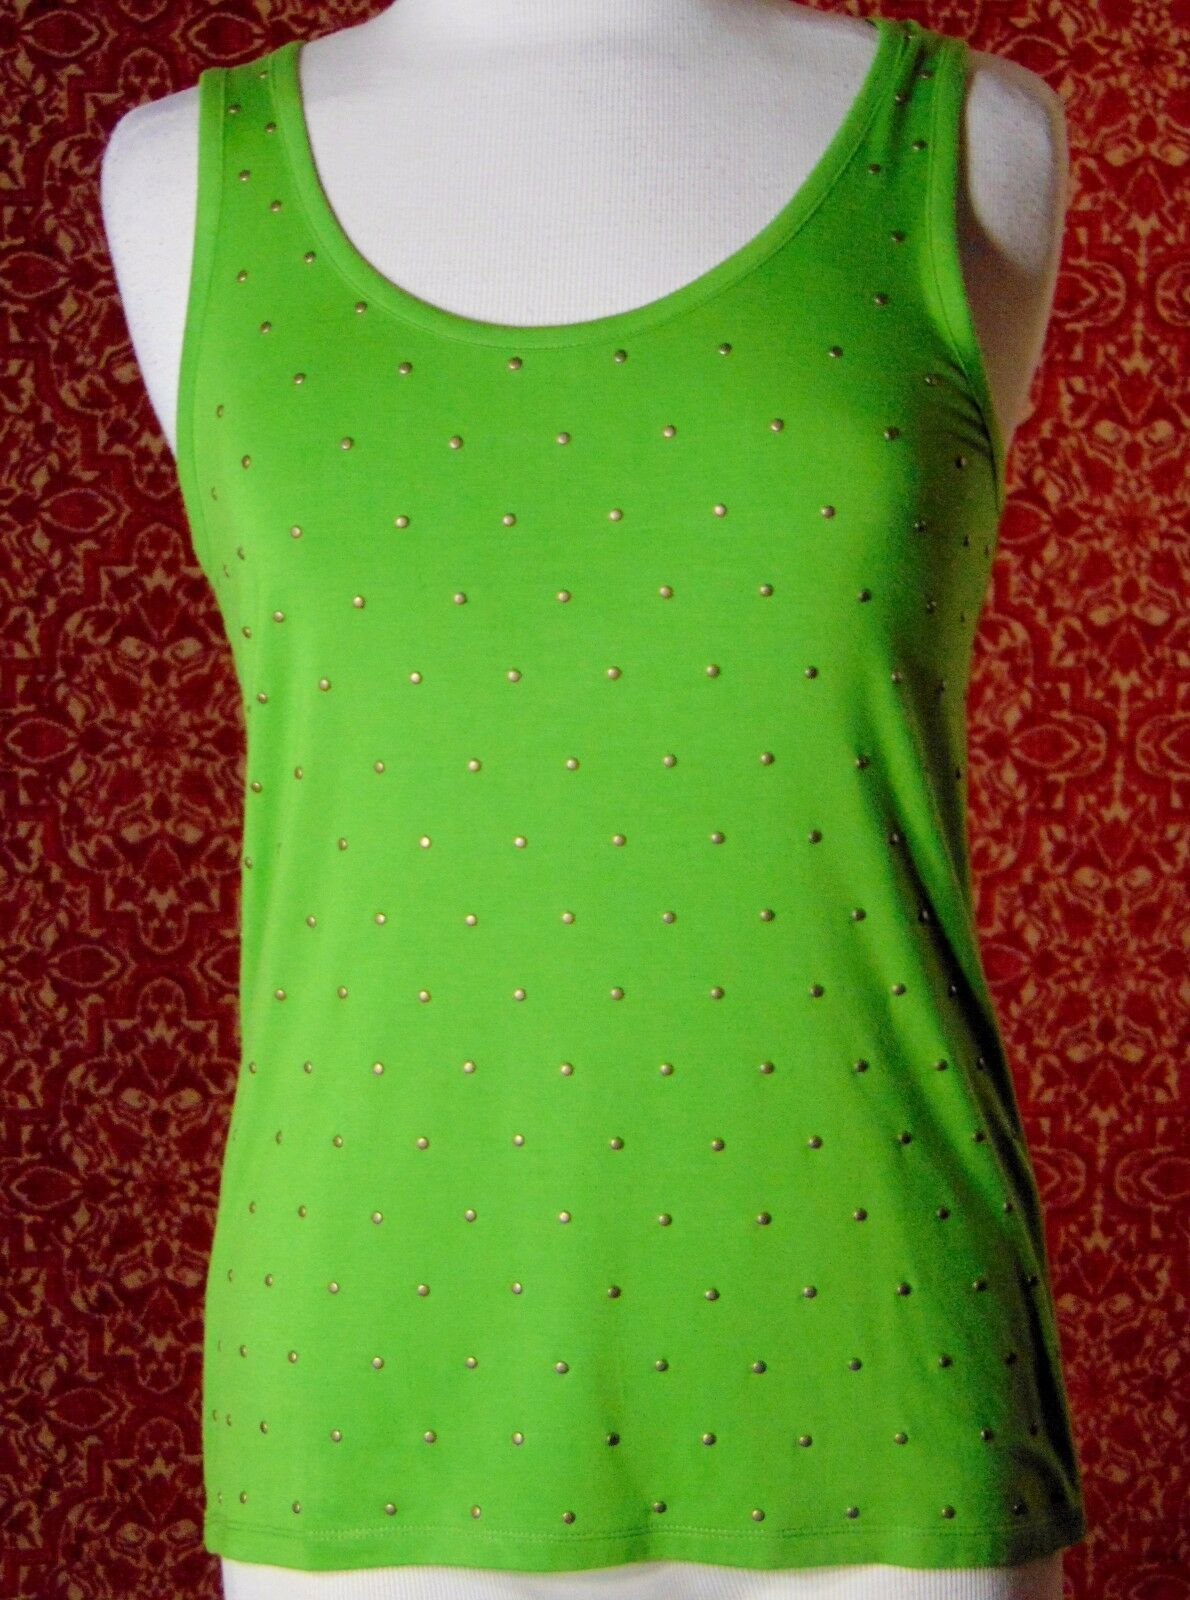 ETOILE green 2 piece stretch rayon tank blouse & sweater jacket M (T47-02I8G) image 10